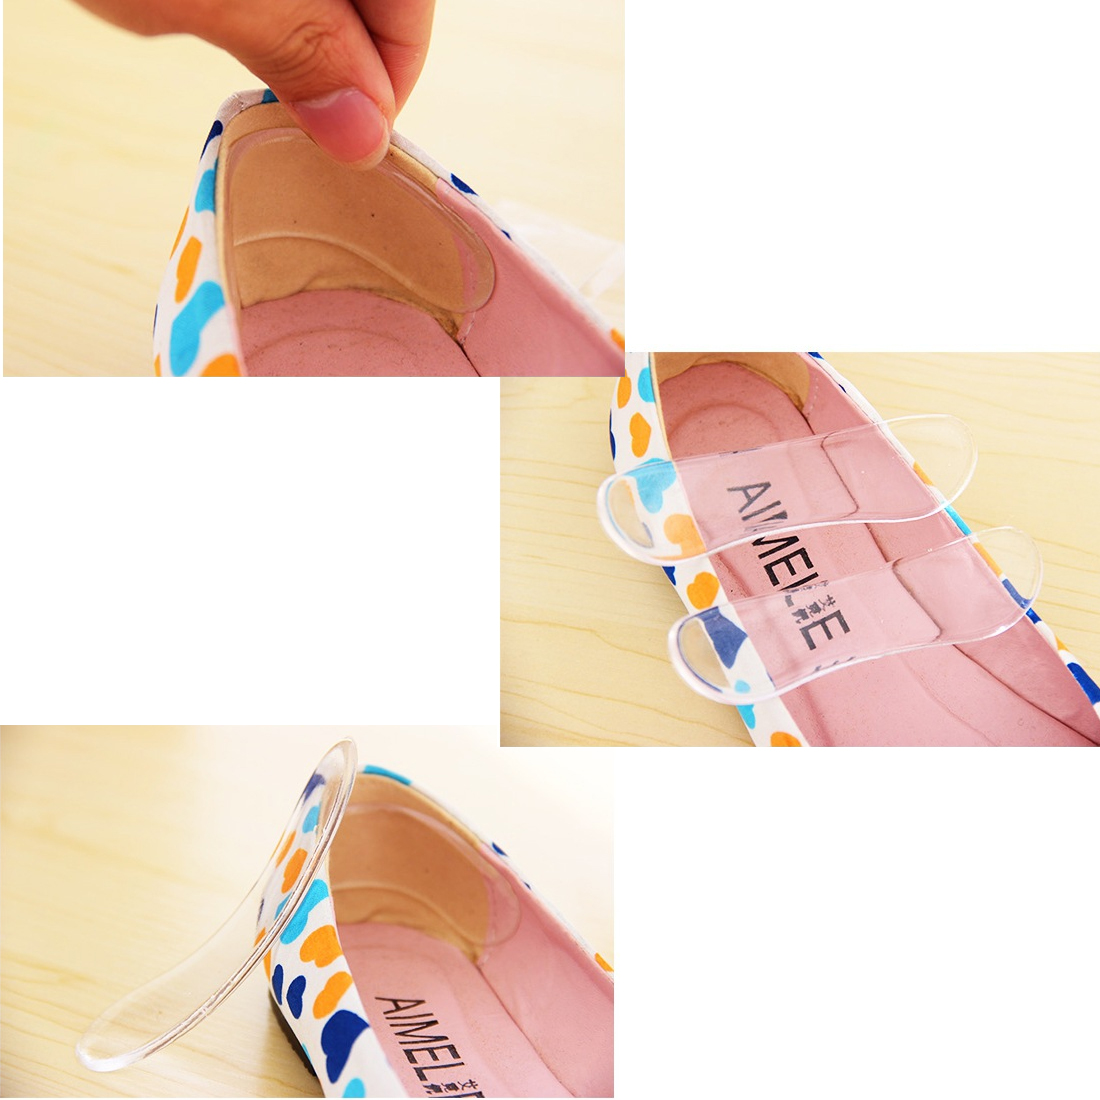 Silicone Gel High Heel Shoe Insole 1 Pair Invesible Transparent Soft Foot Care Shoes Insert Sticker Washable Reuse Footpad